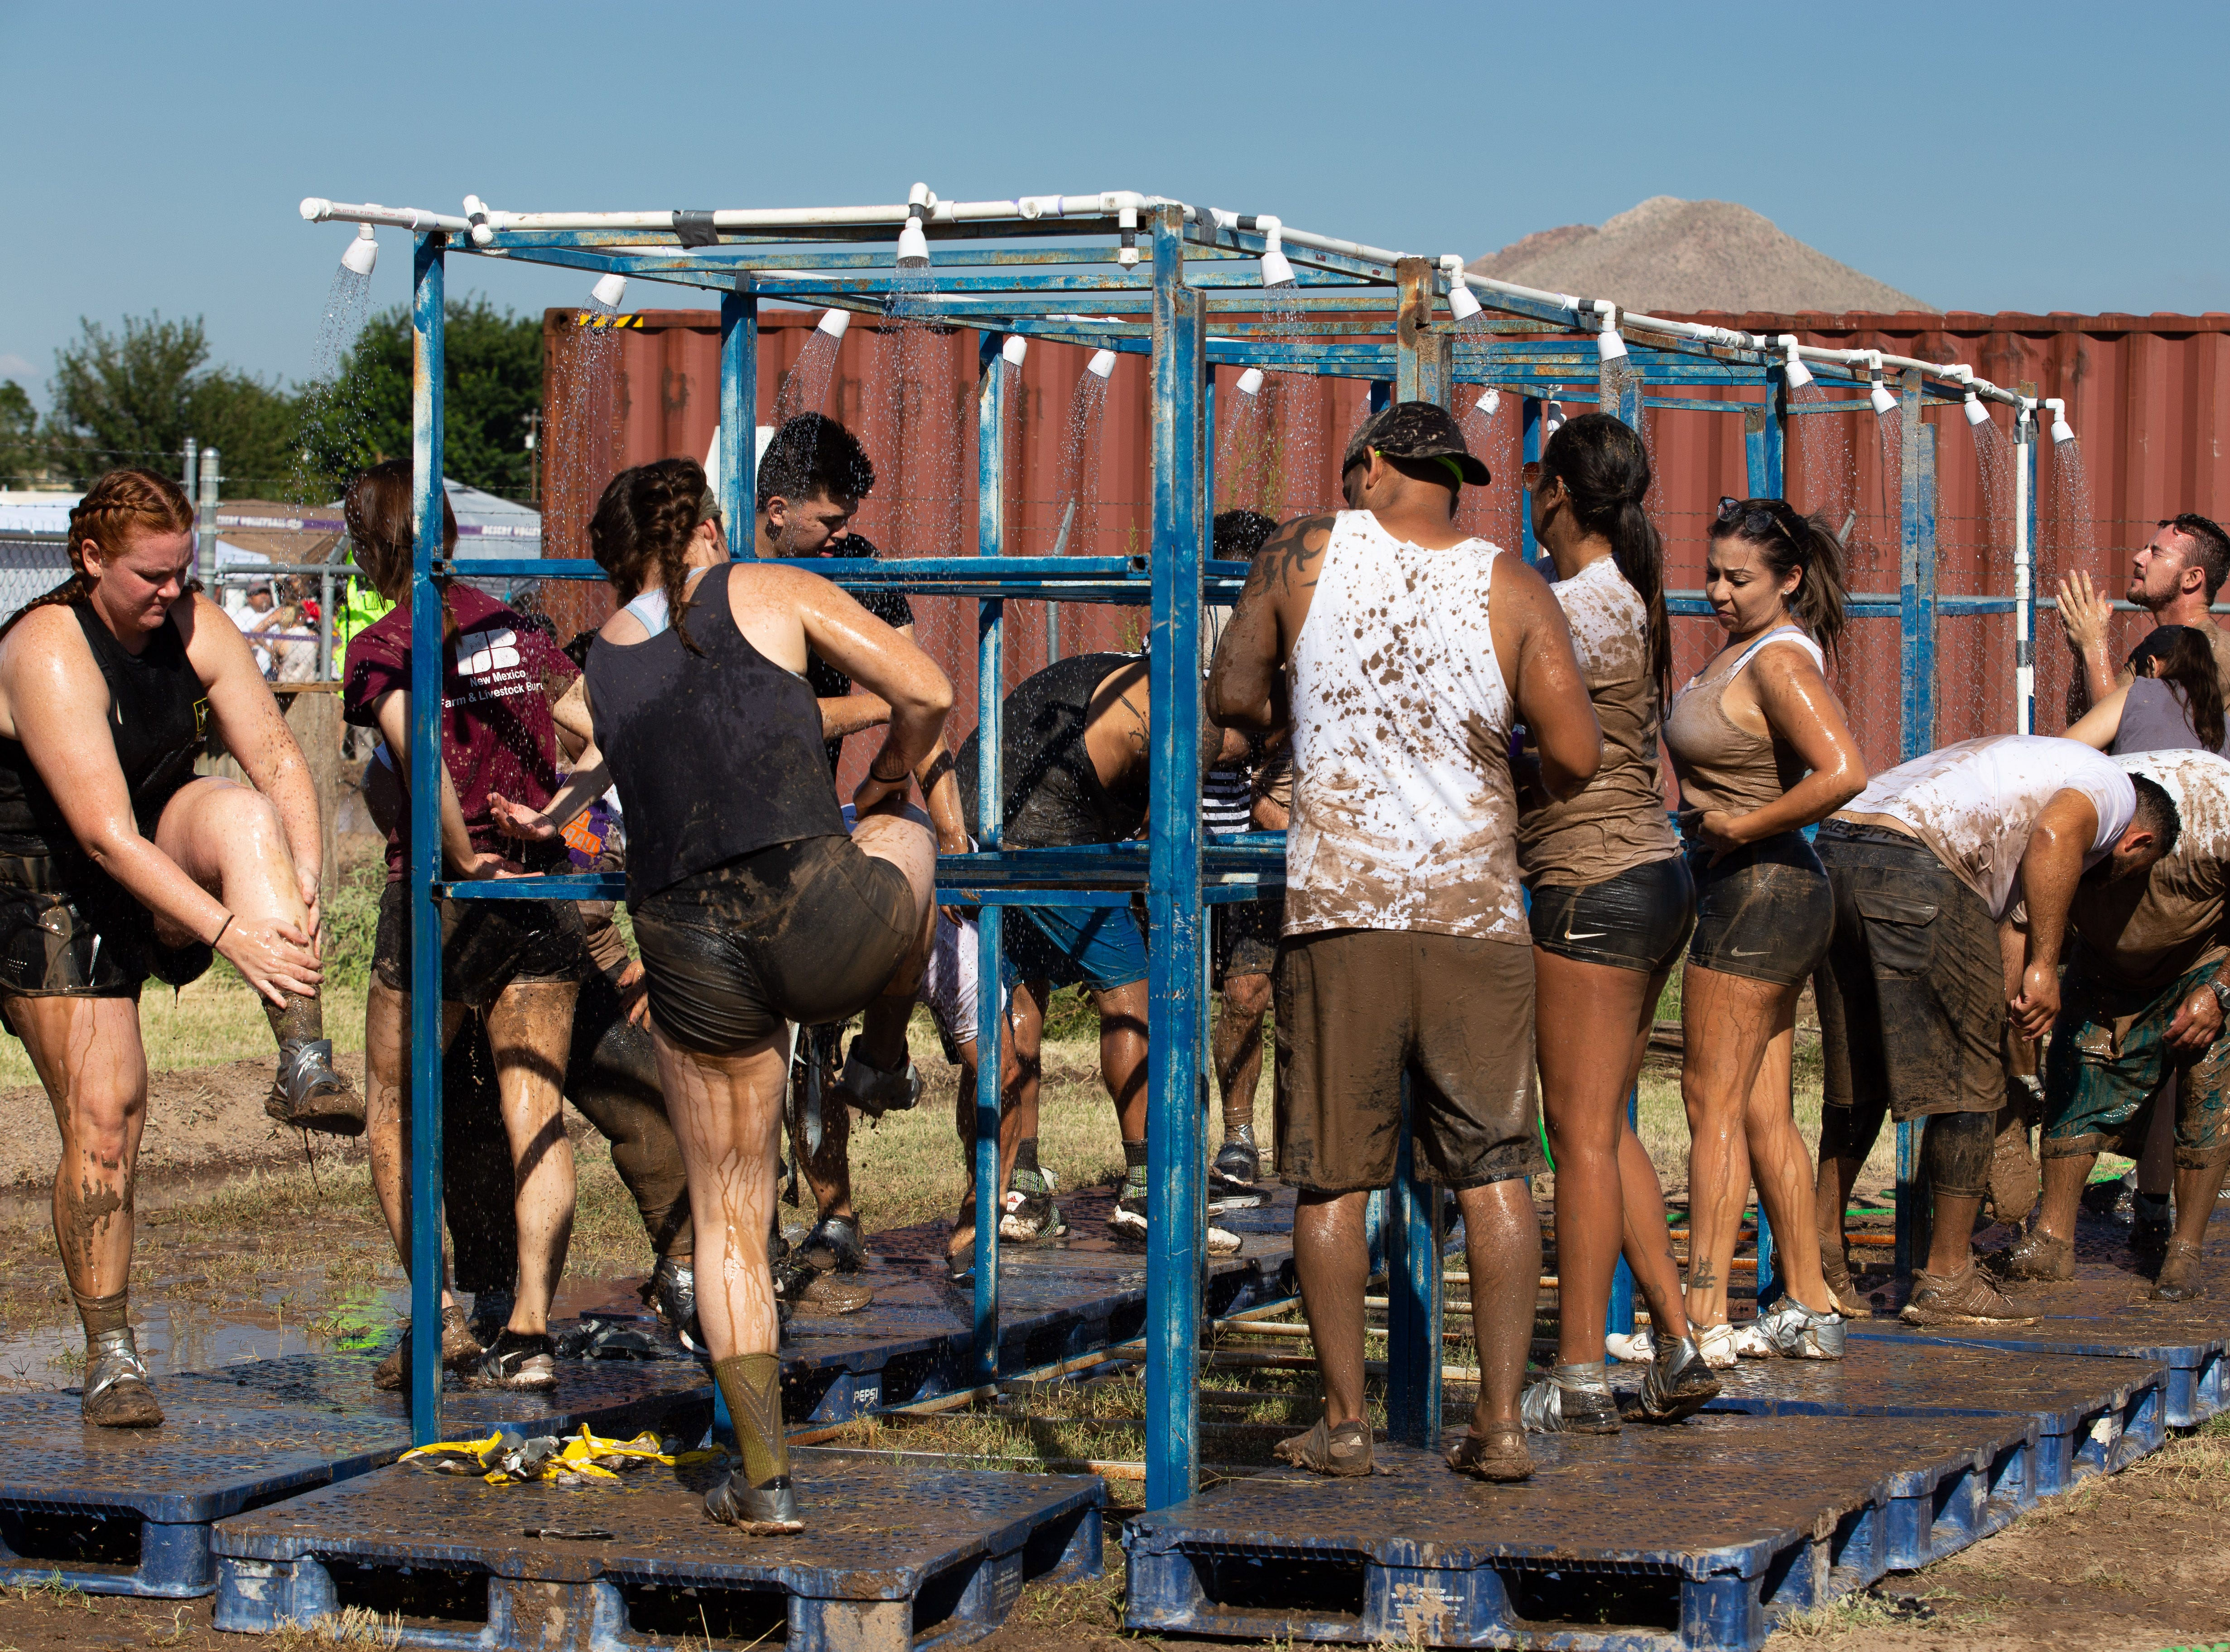 A refreshing shower was essential to clean up and cool off at the 9th Annual Mudd Volleyball tournament on September 8, 2018.